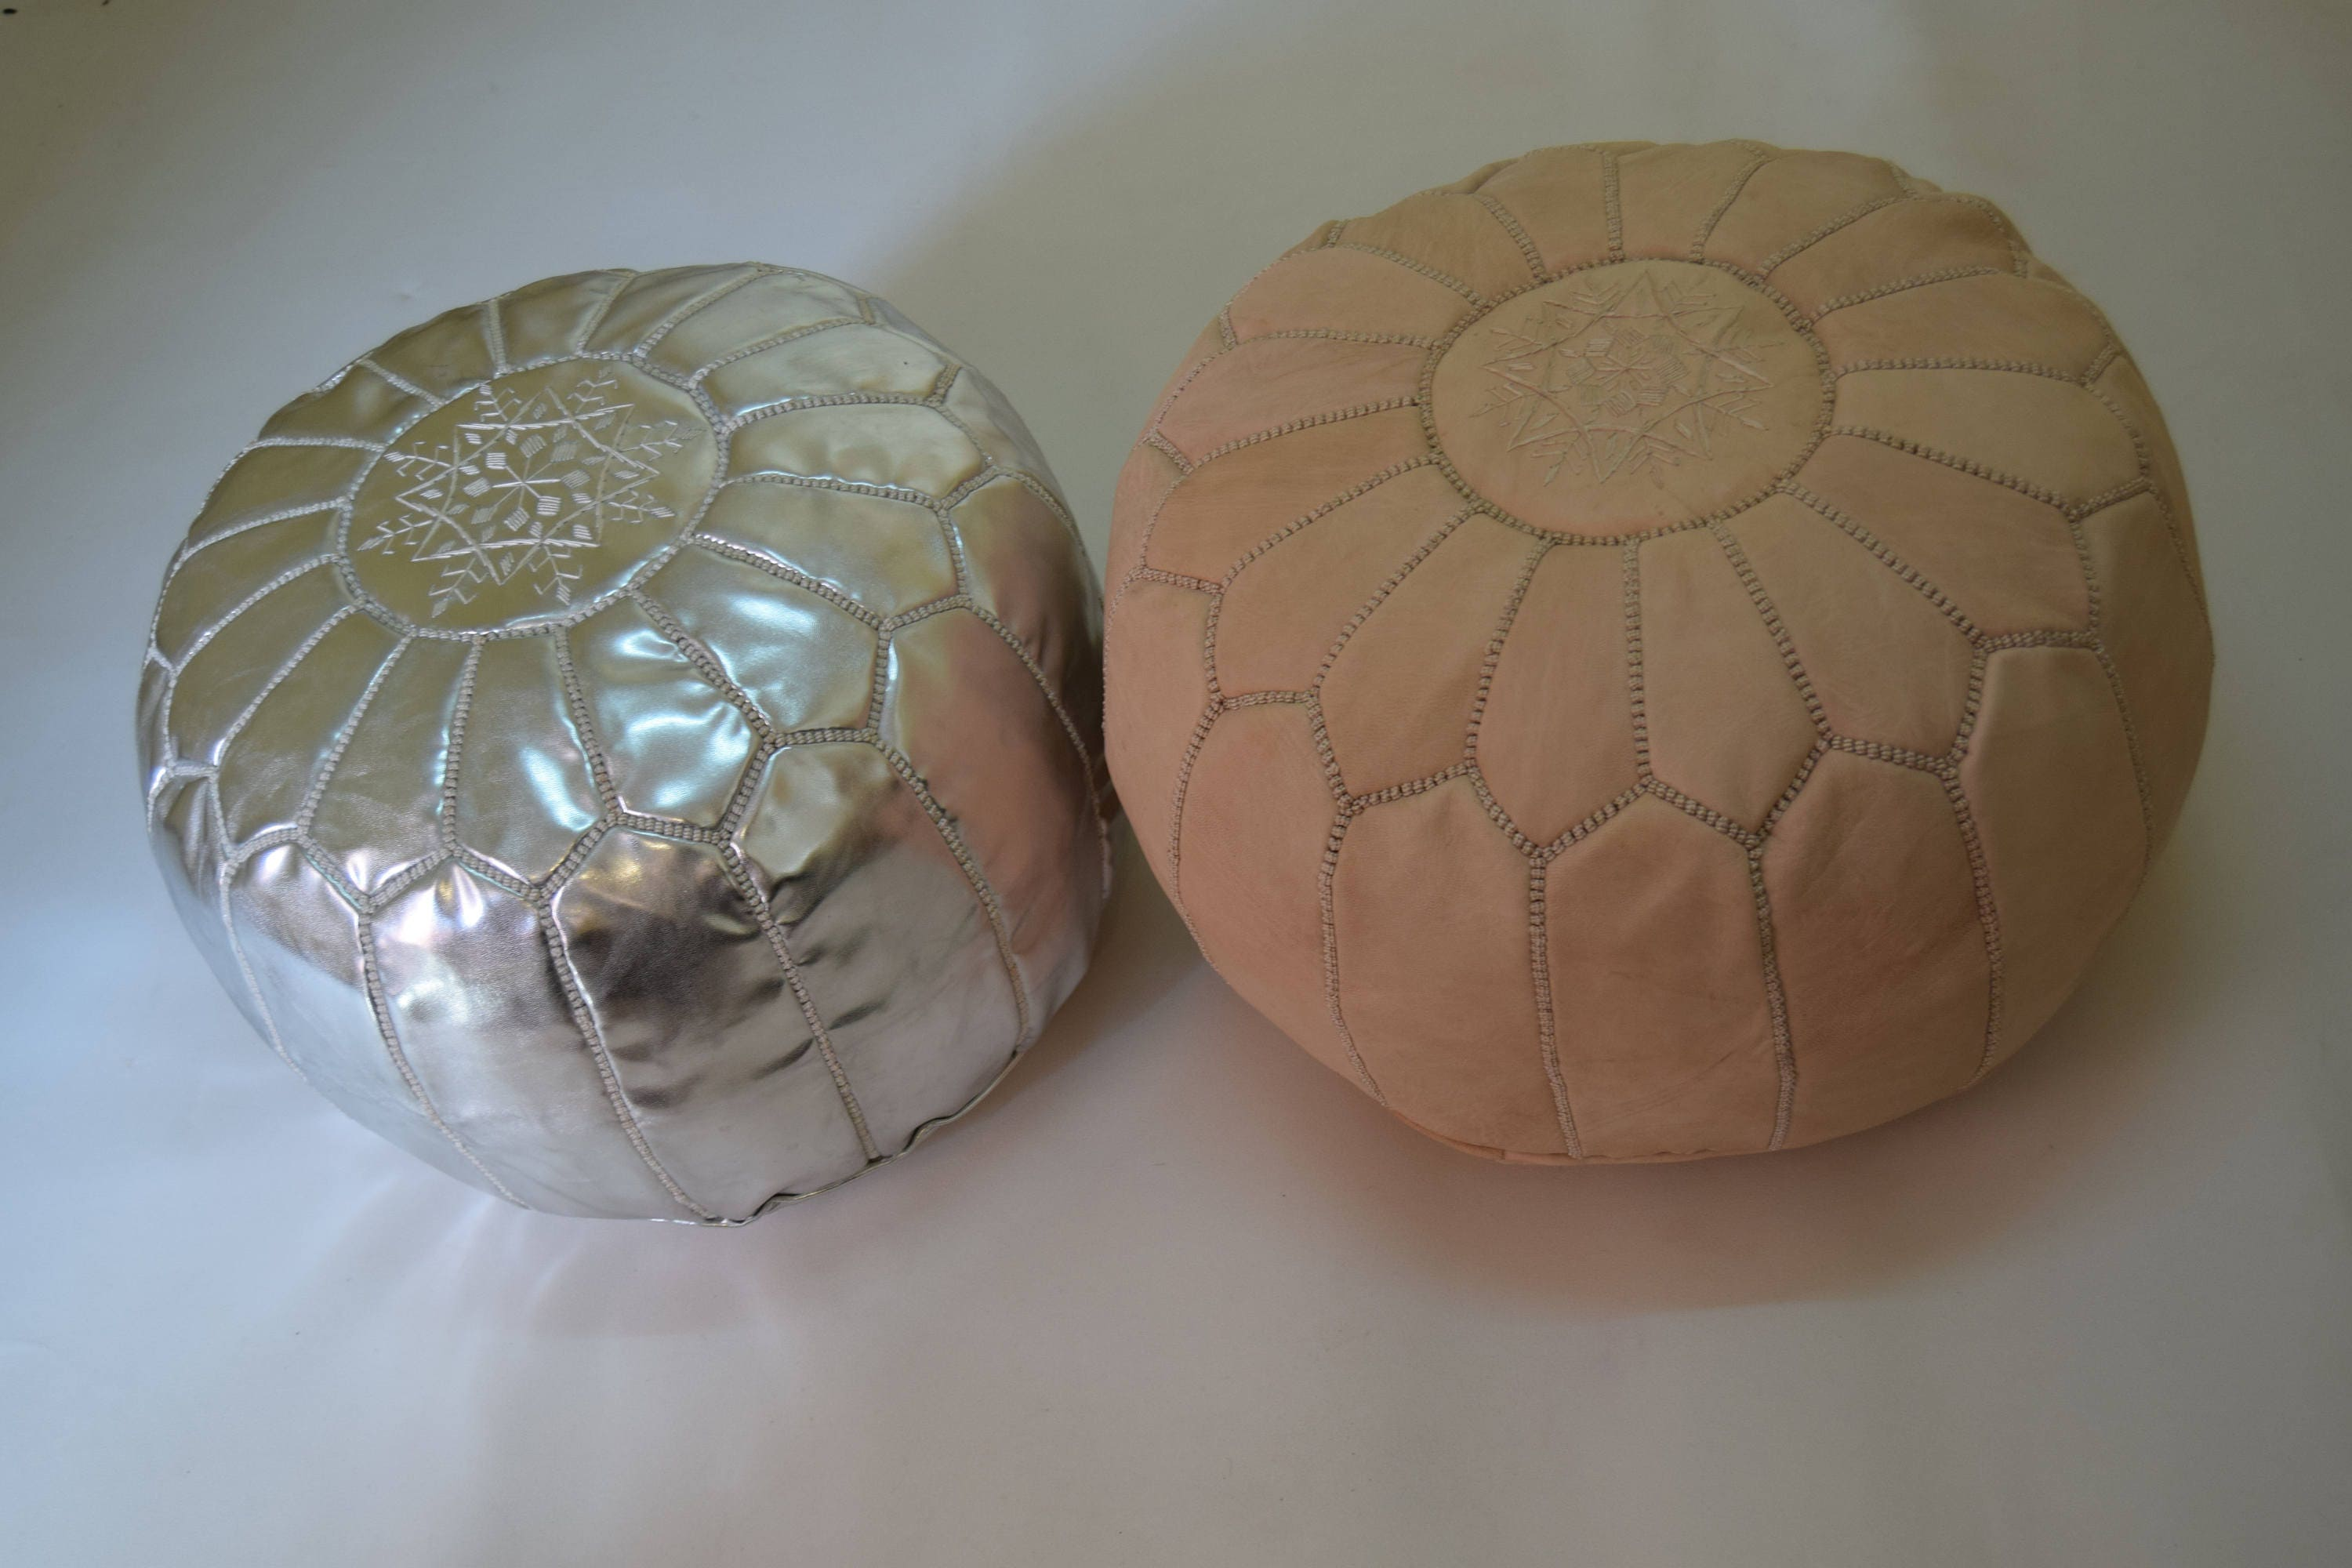 2 Moroccan leather natural & silver poufs ottoman floor round